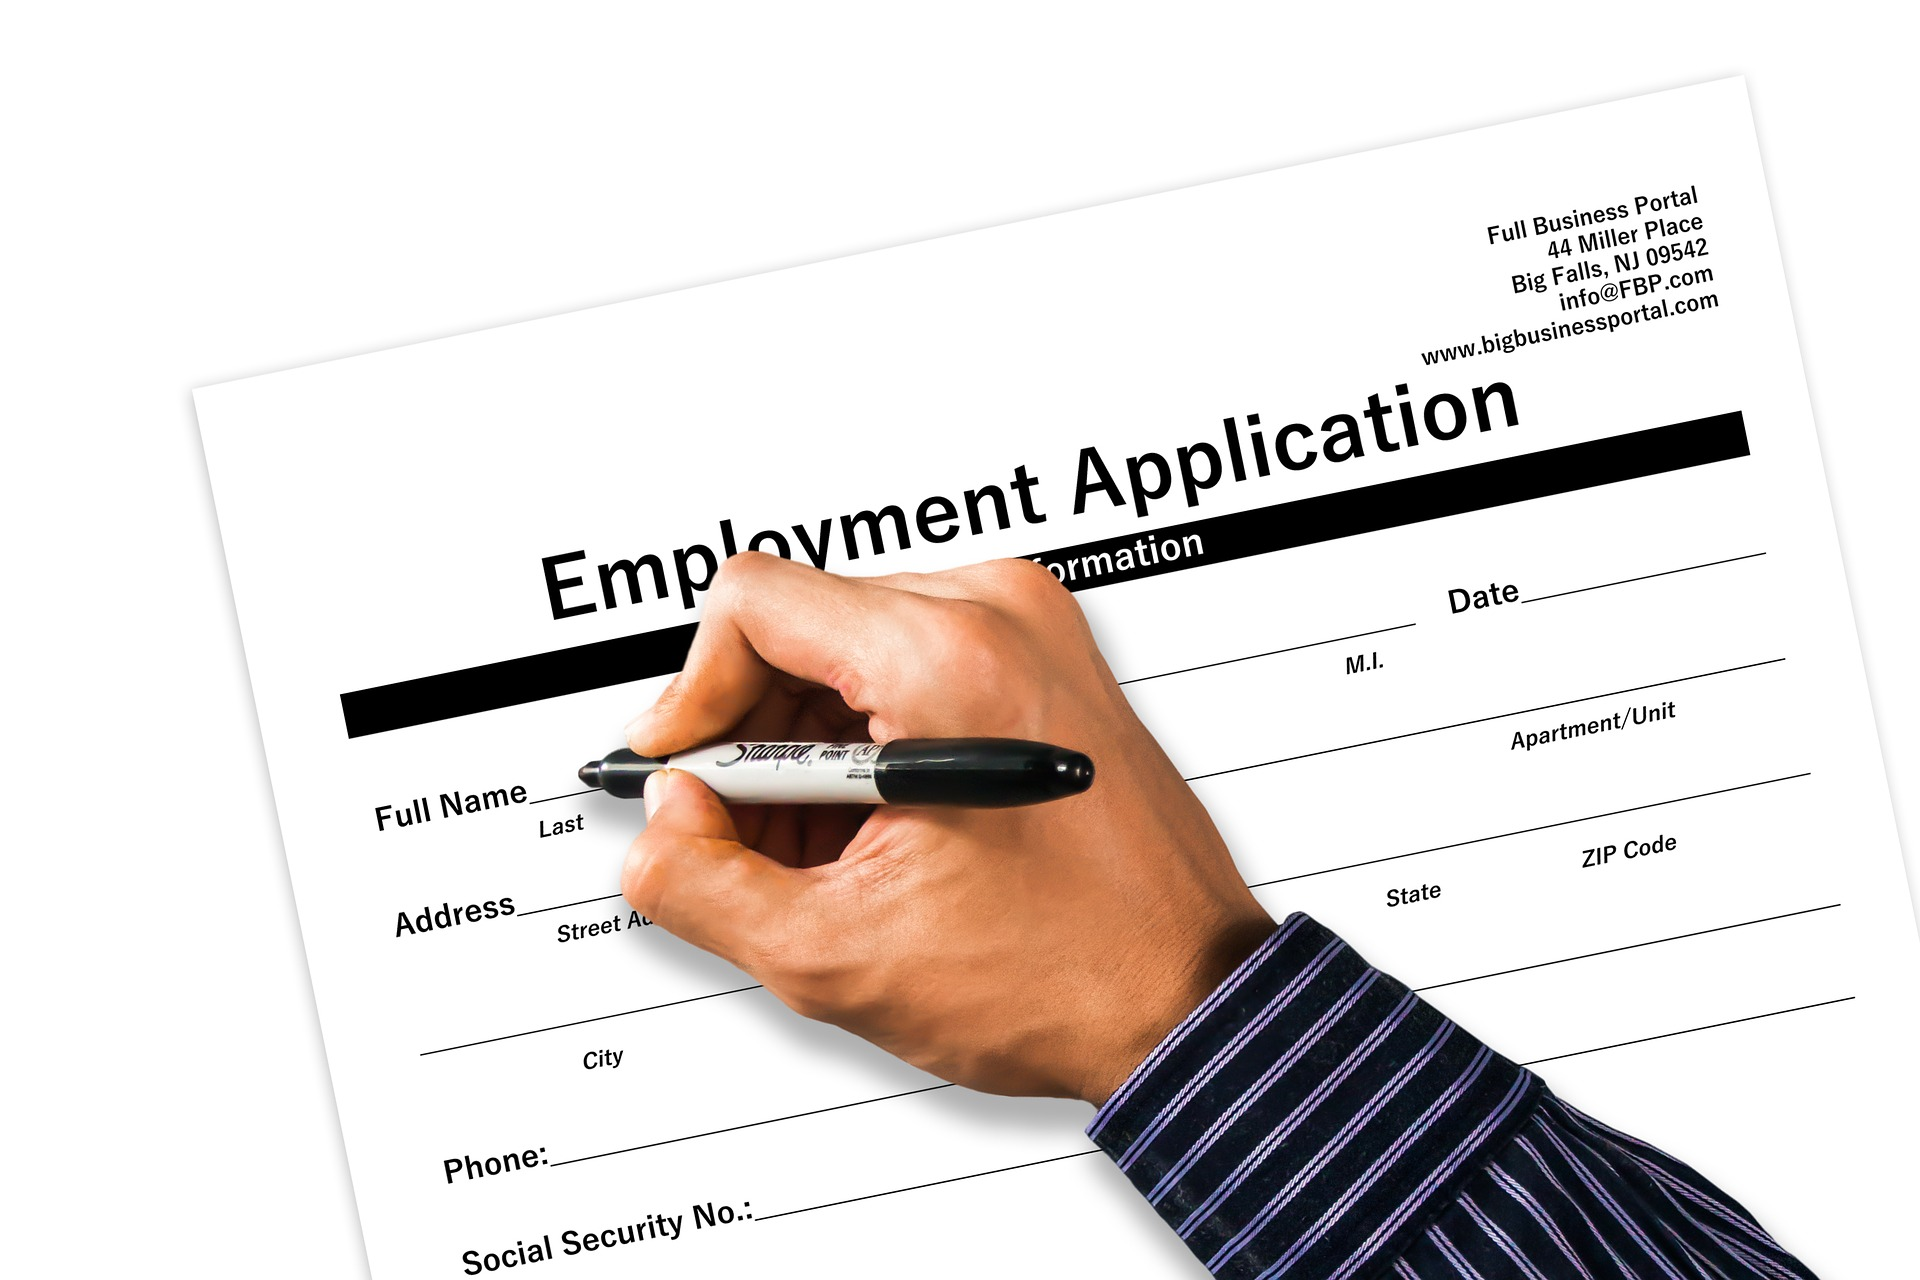 Worst Job Applications facts